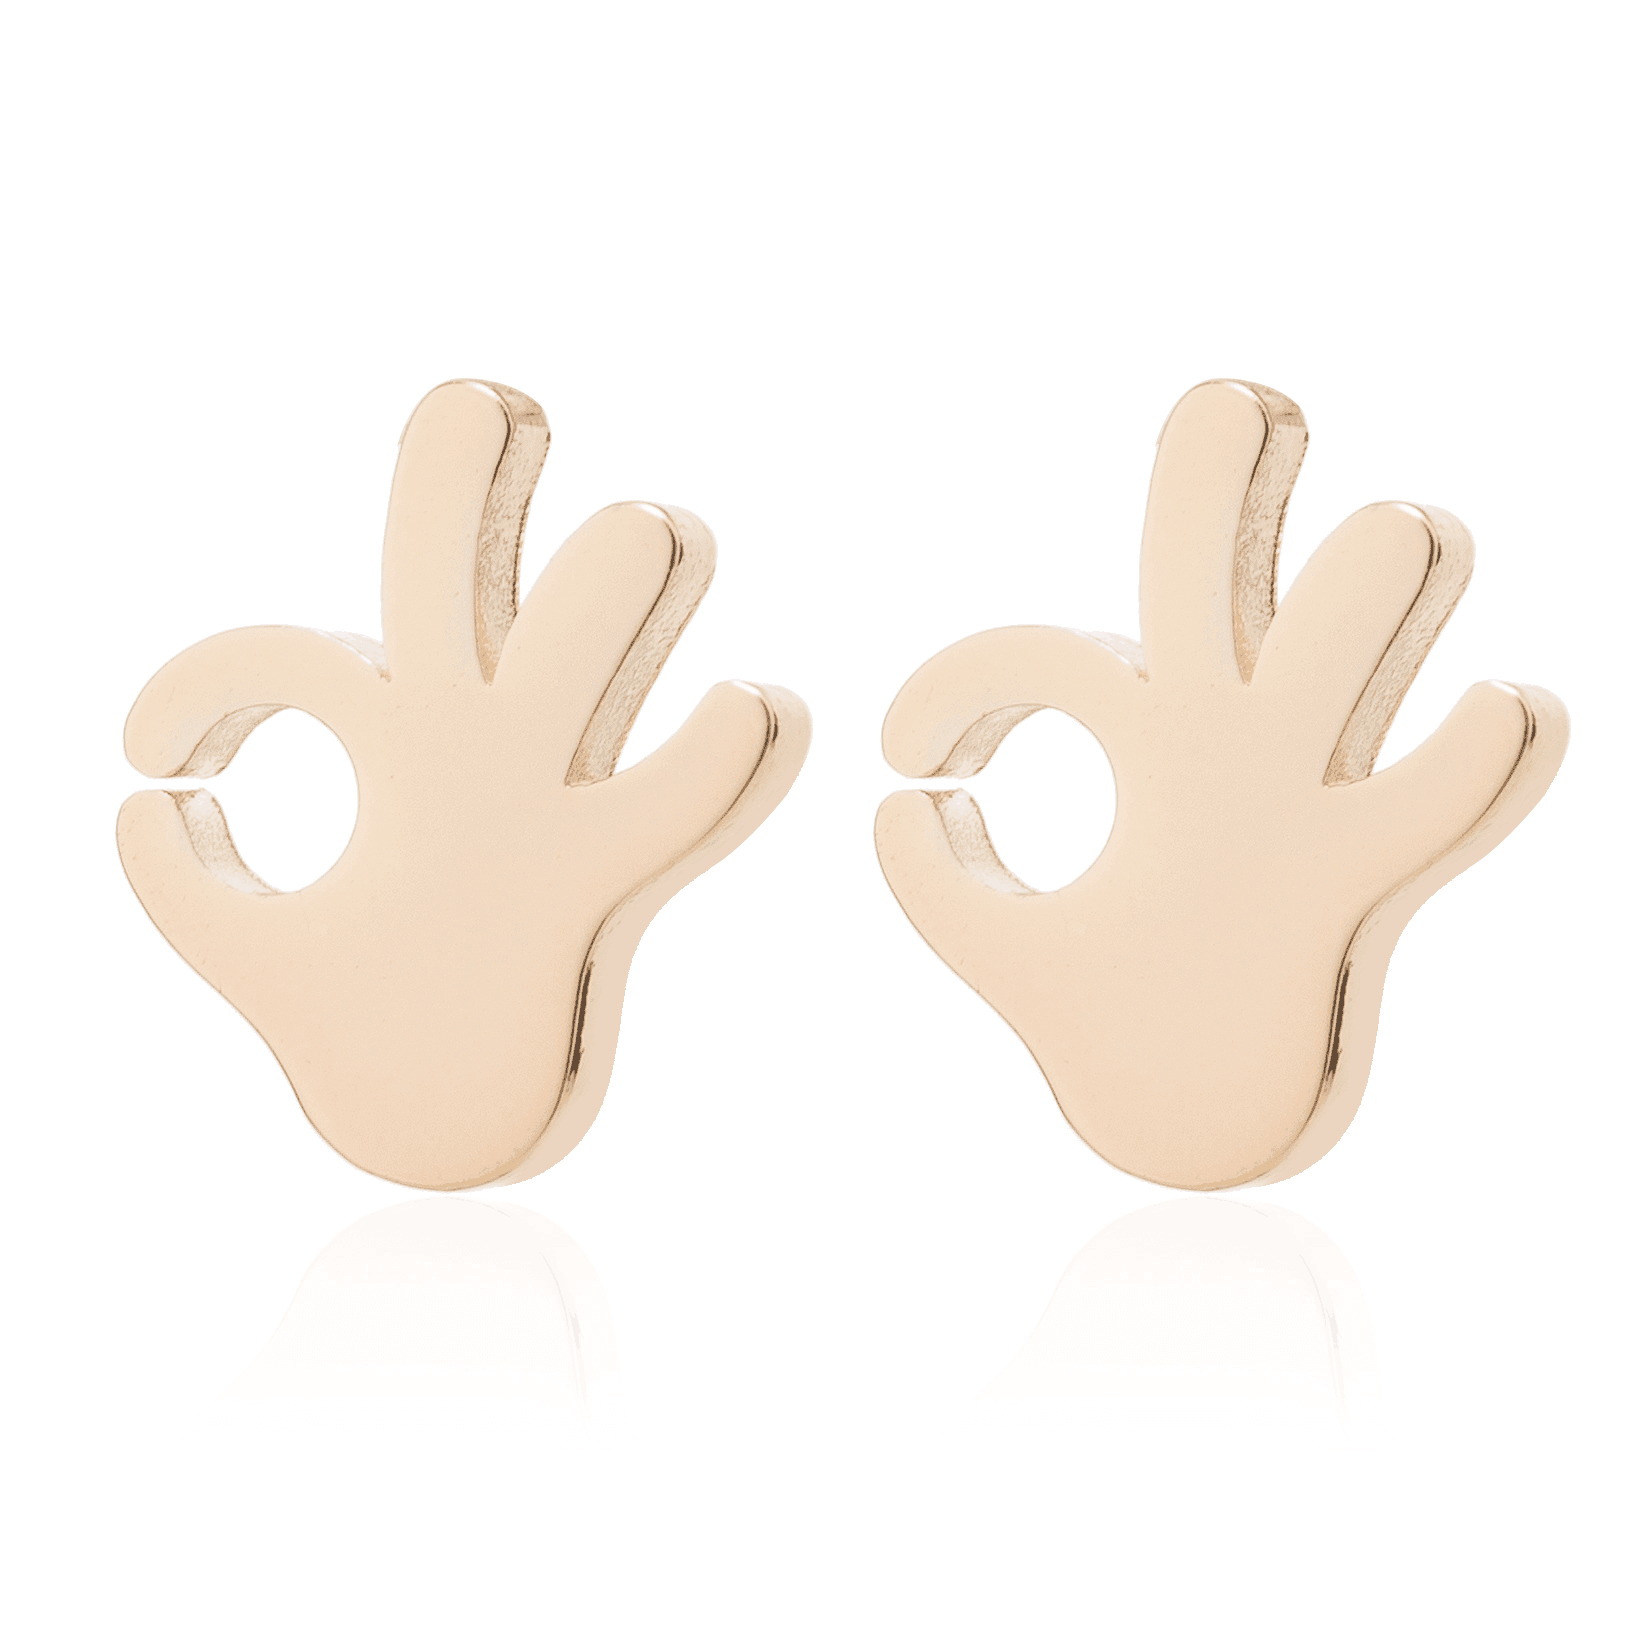 Gold Color Gestures OK Shaped Stud Earrings